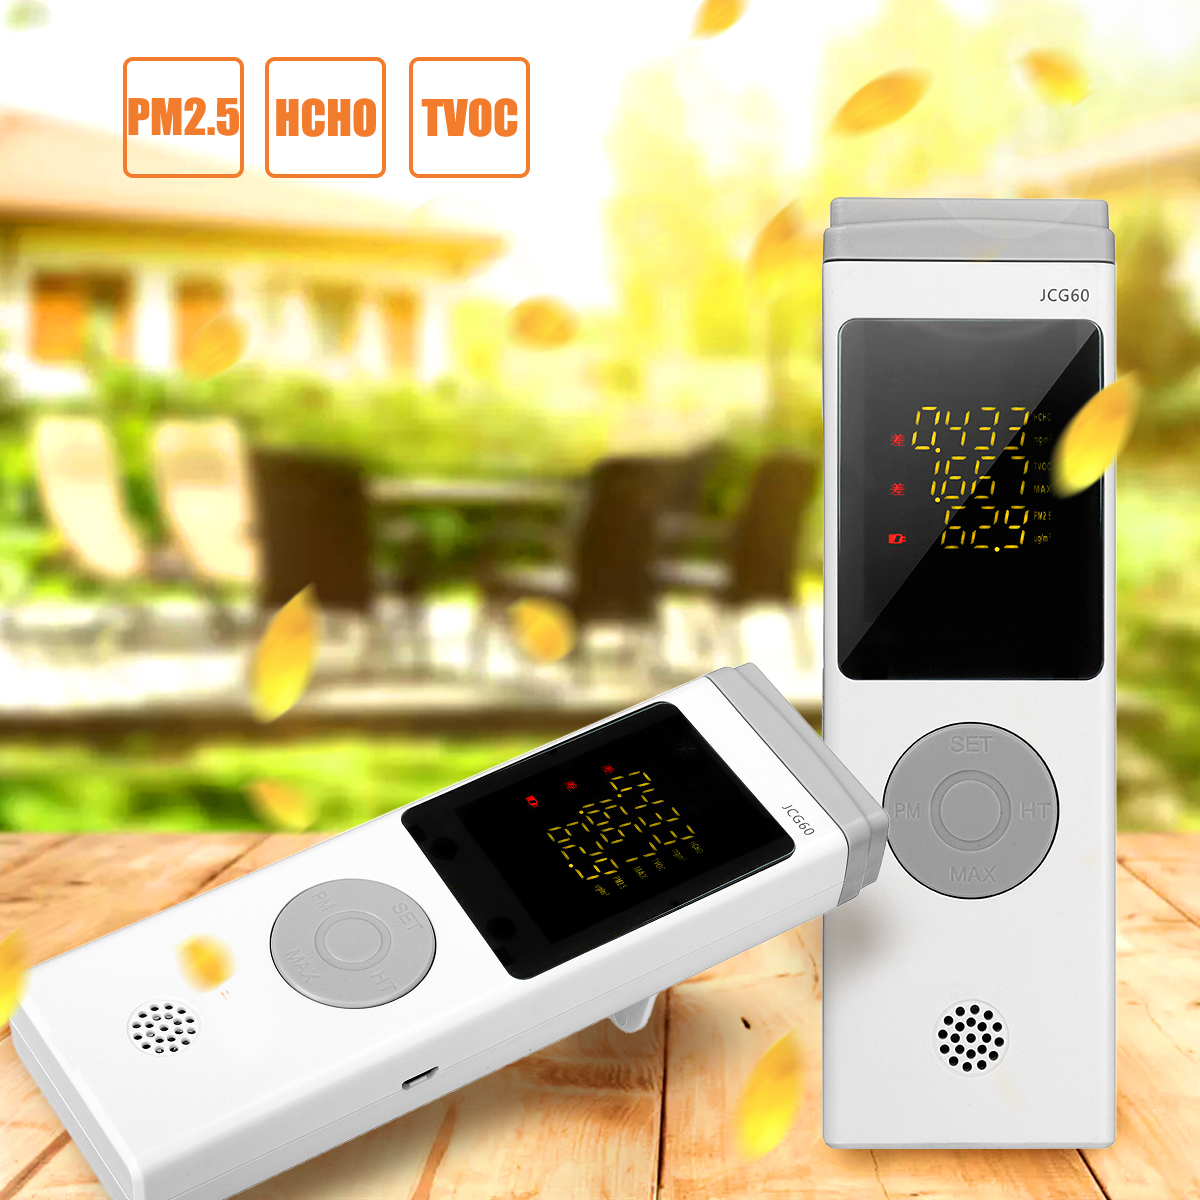 HCHO TVOC PM2.5 Real Time Formaldehyde Detector Detects Testing Record Analyzed USB Charging Monitor Air Quality for Home Office цена